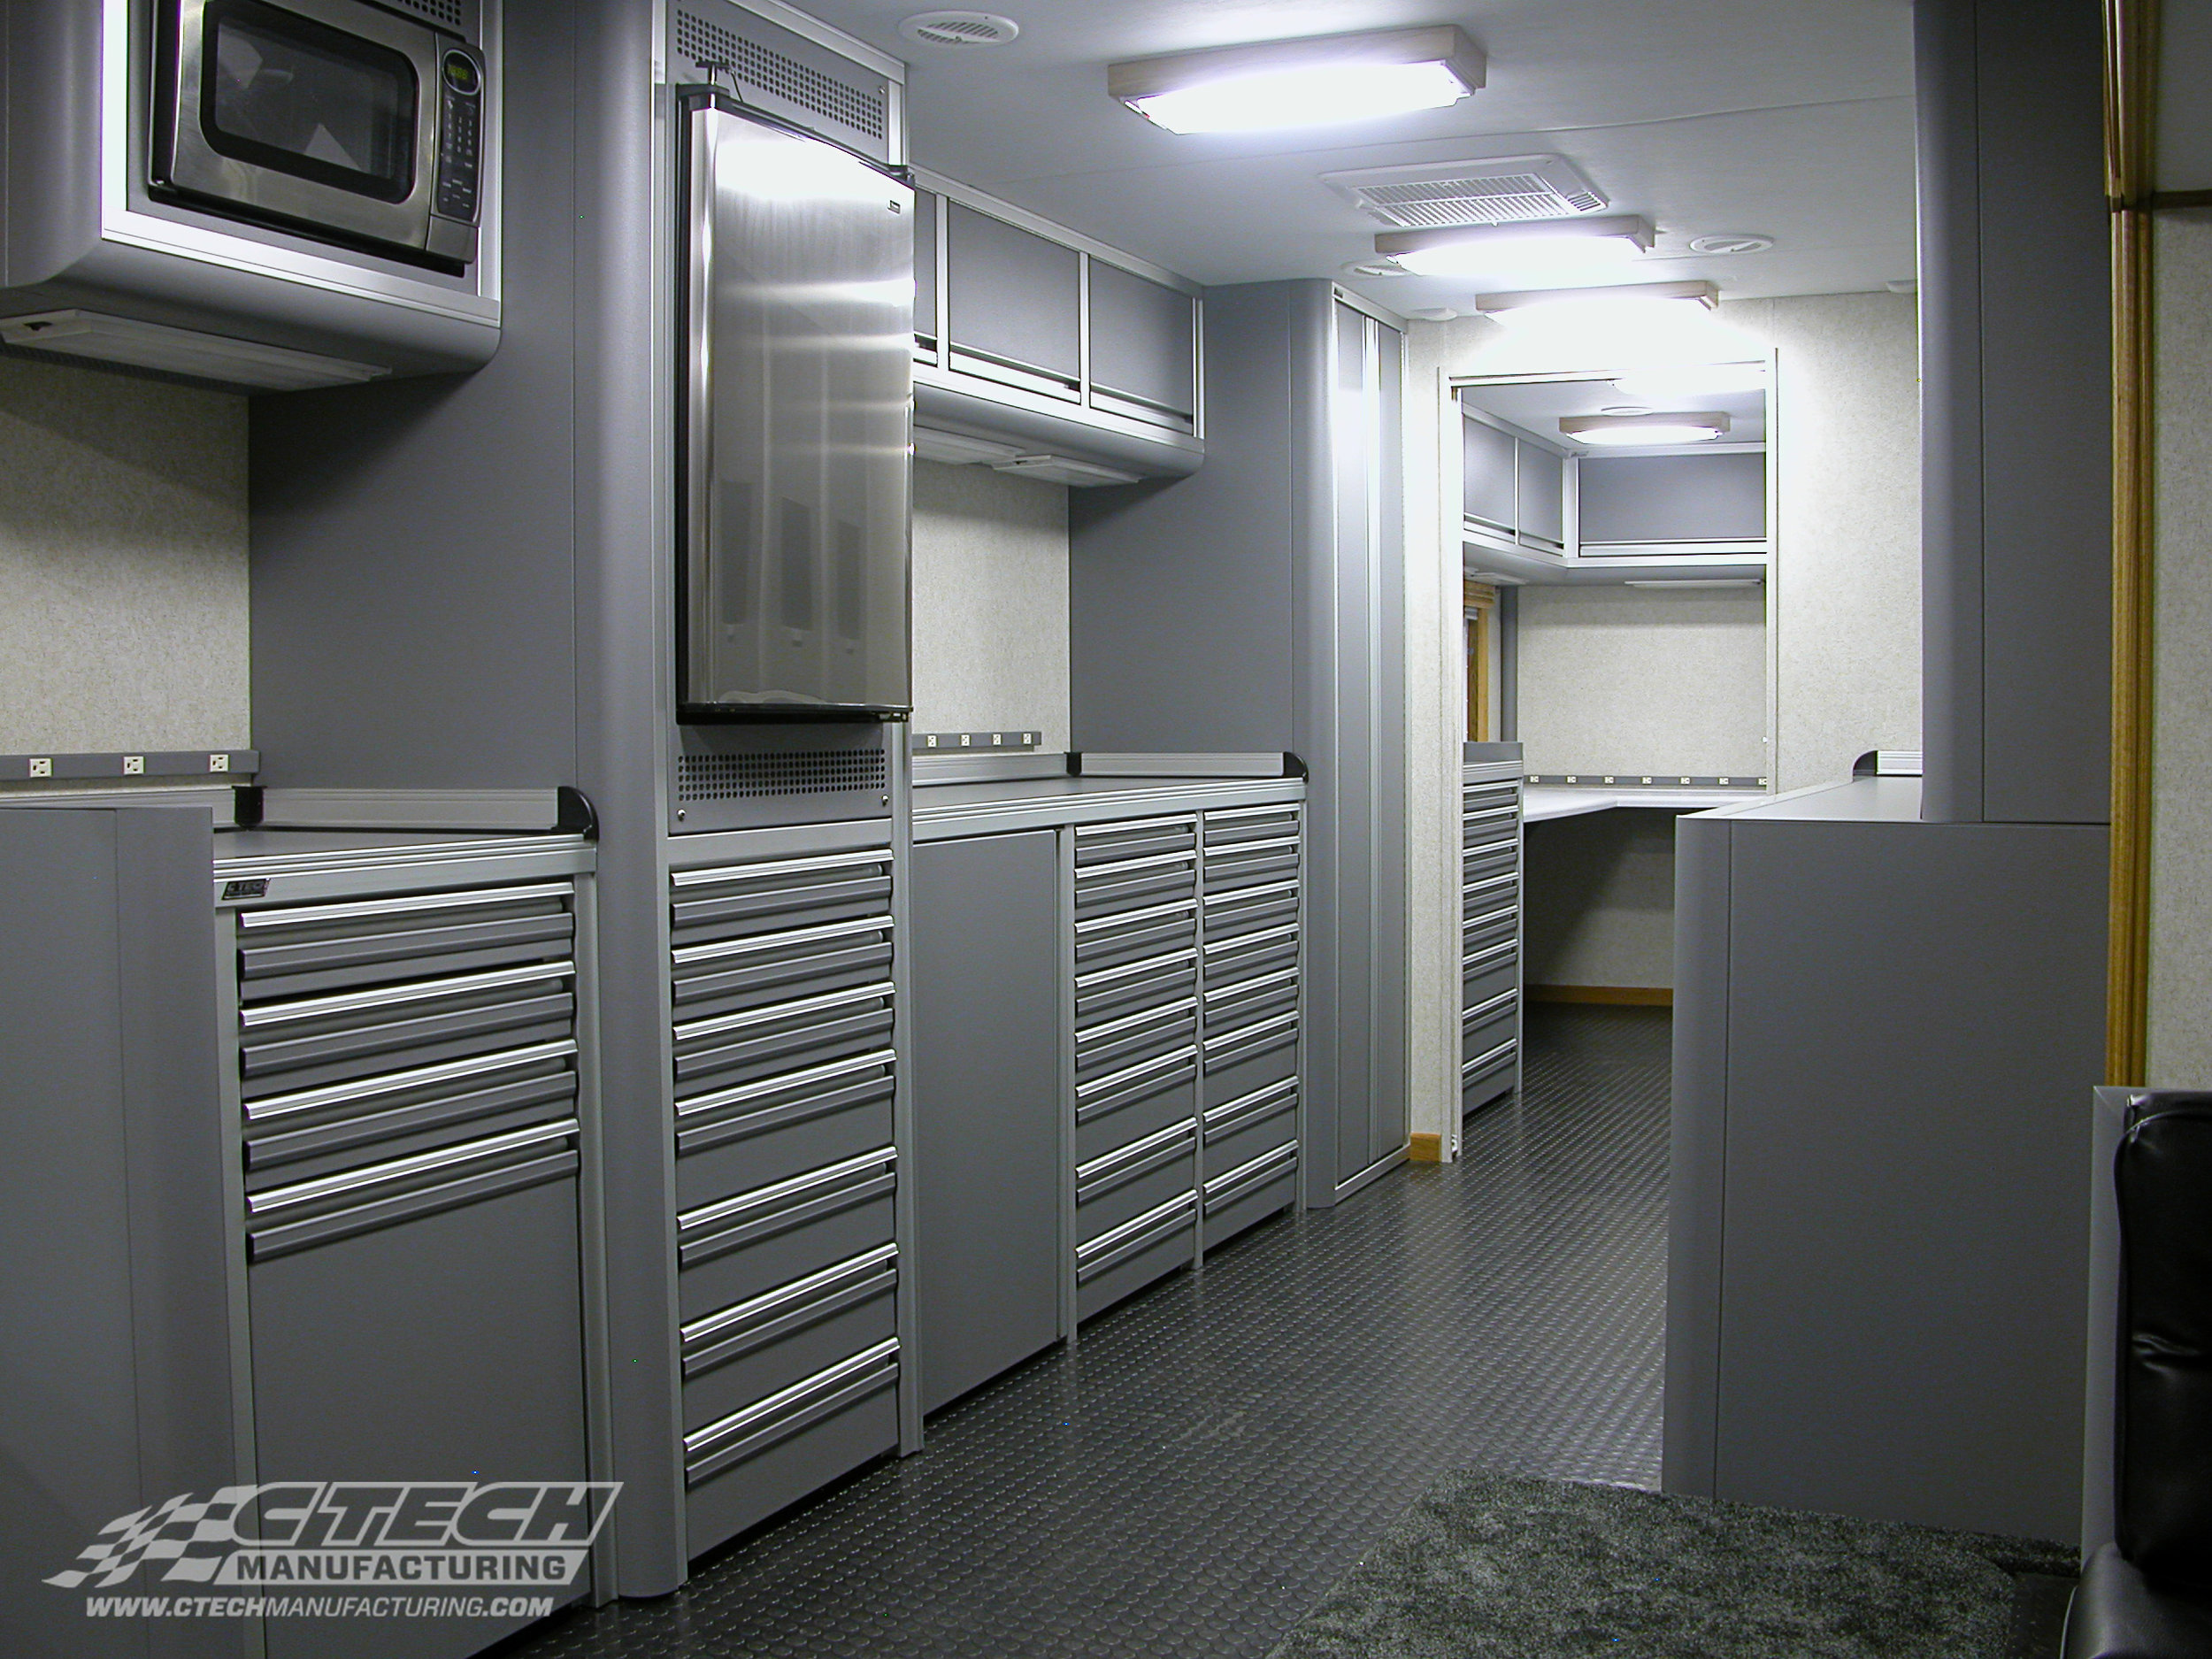 CTECH's lightweight aluminum cabinets make it possible to easily bring the comfort and functionality of a home kitchen on the road. Hospitality trailers rely on CTECH cabinets to provide premium trailer storage systems in a package that is appliance-friendly and homely. BOM 3294